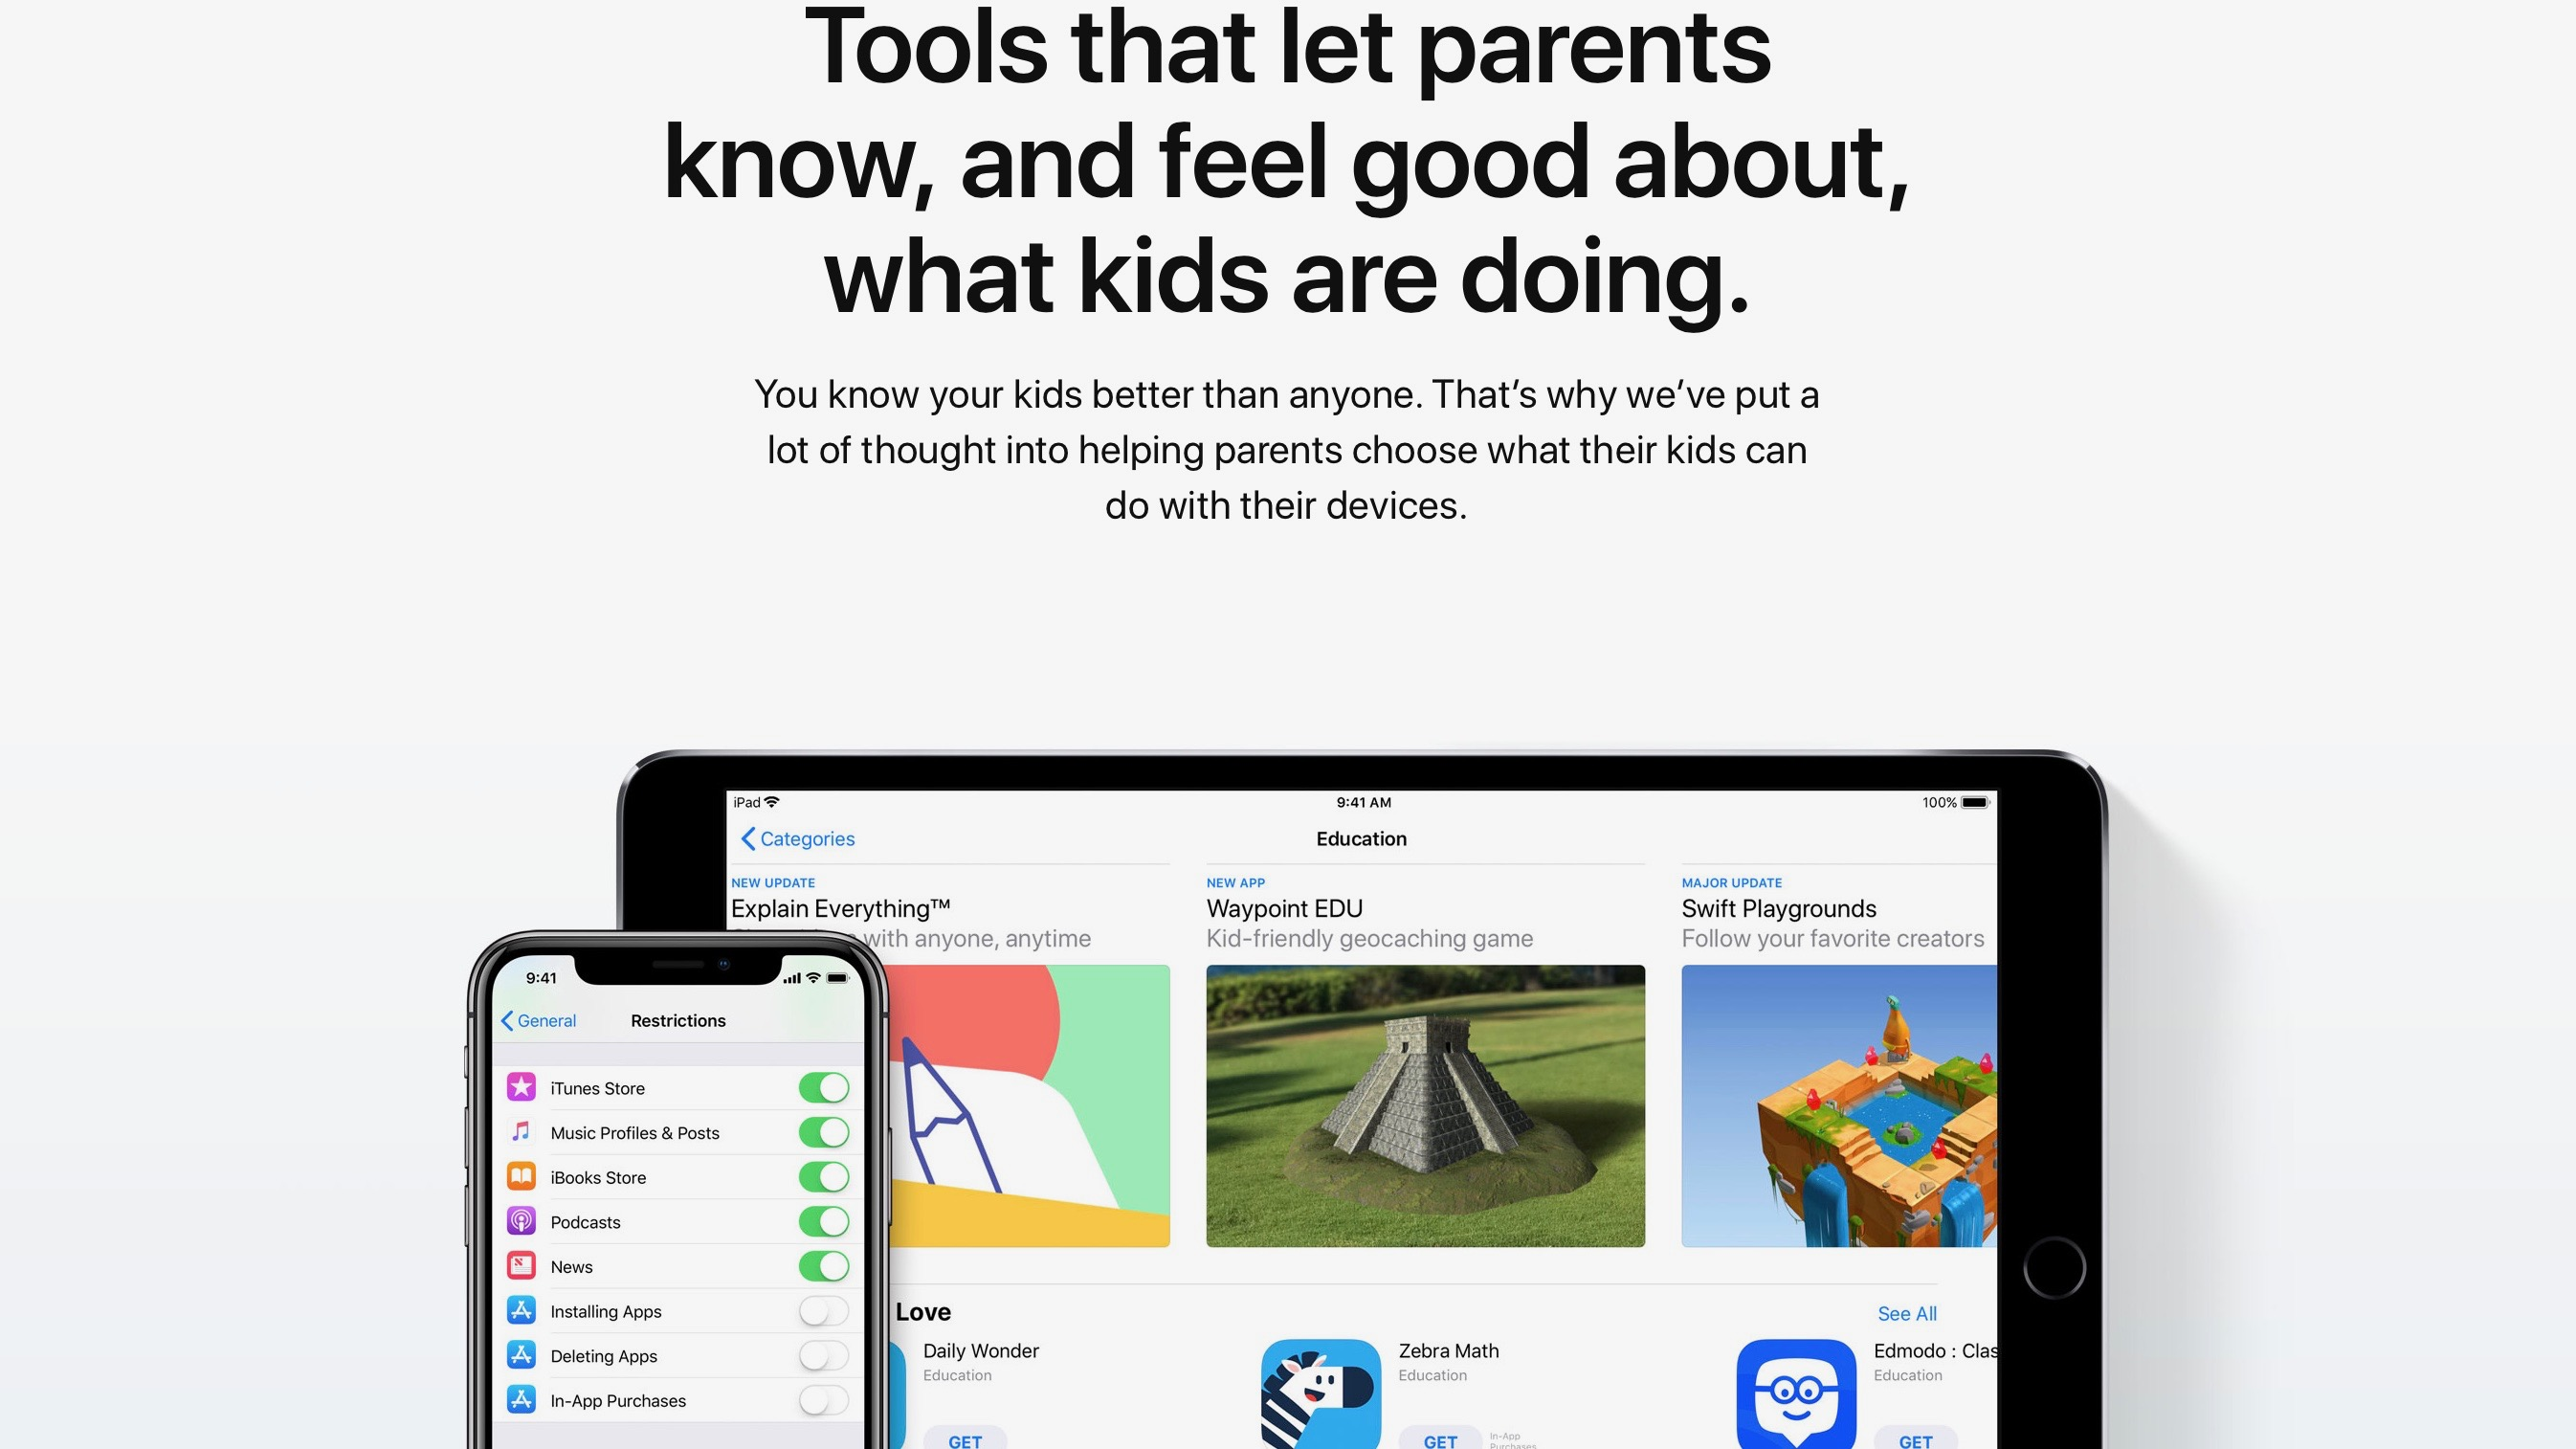 Apple publishes new 'Families' webpage with parental control tips & tricks